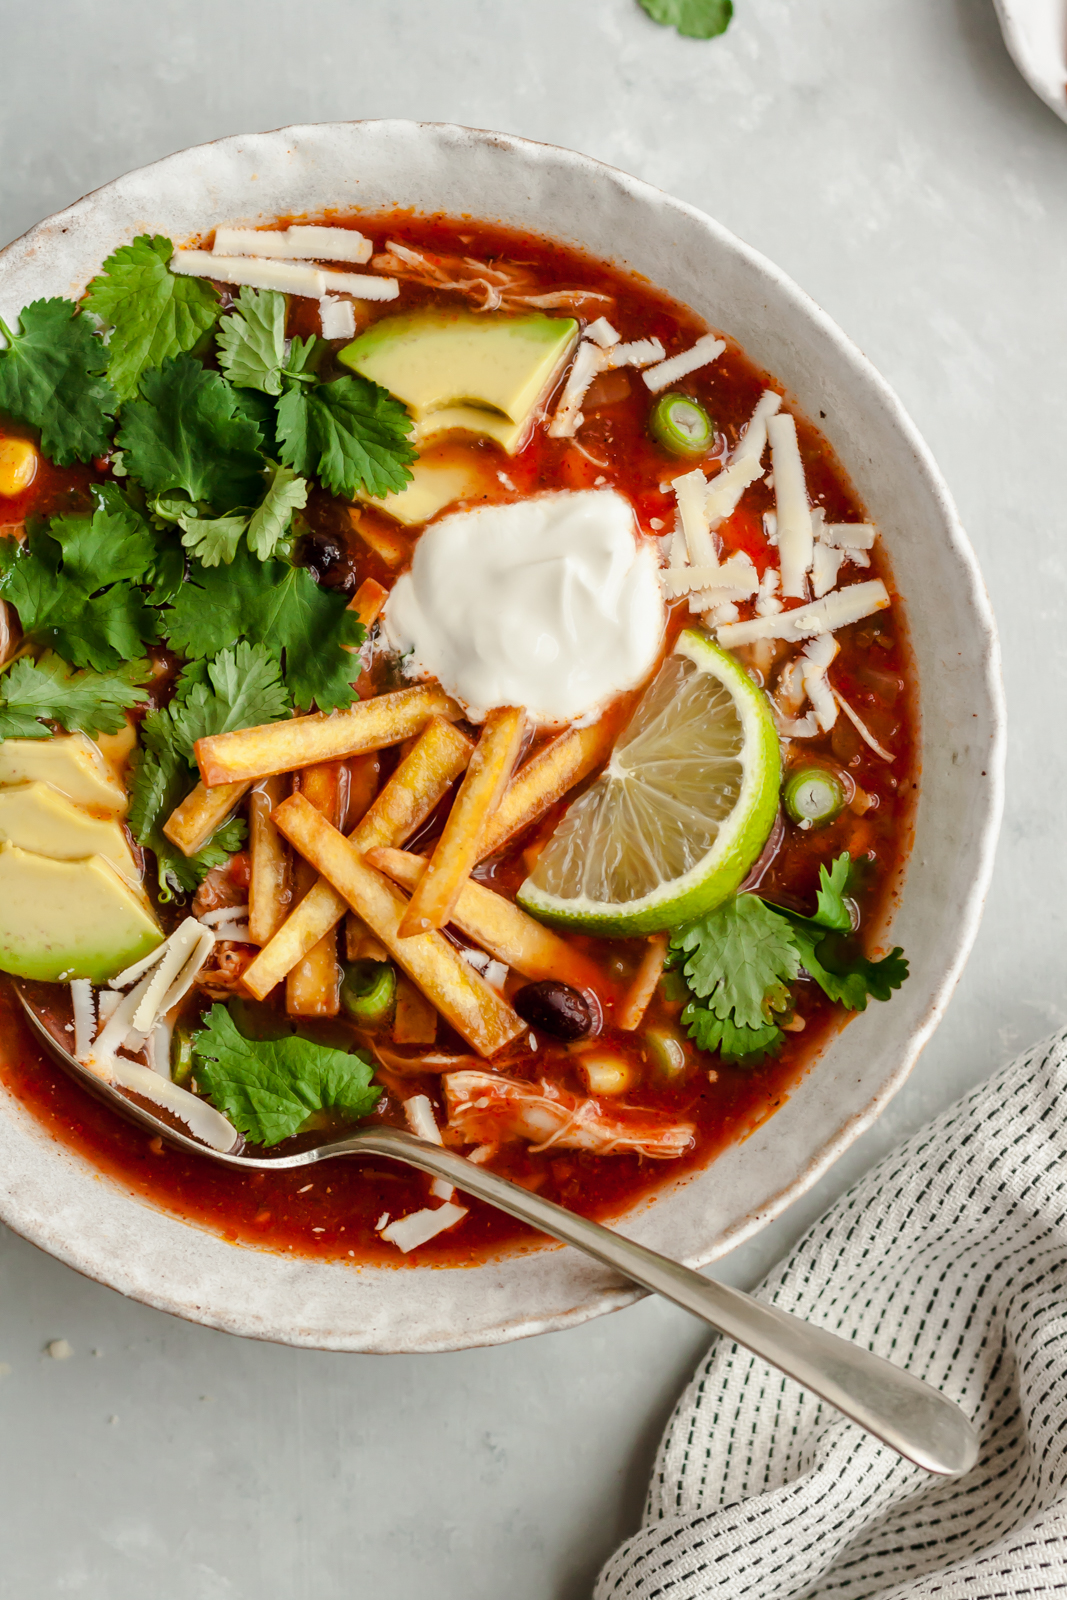 The best healthy Slow Cooker Mexican Chicken Tortilla Soup recipe loaded with fire-roasted tomatoes, tender chicken and savory spices. This easy recipe is perfect for meal prep or family dinner and can easily be made on the stovetop too. Top with avocado, cheese, sour cream and crispy tortilla chips!